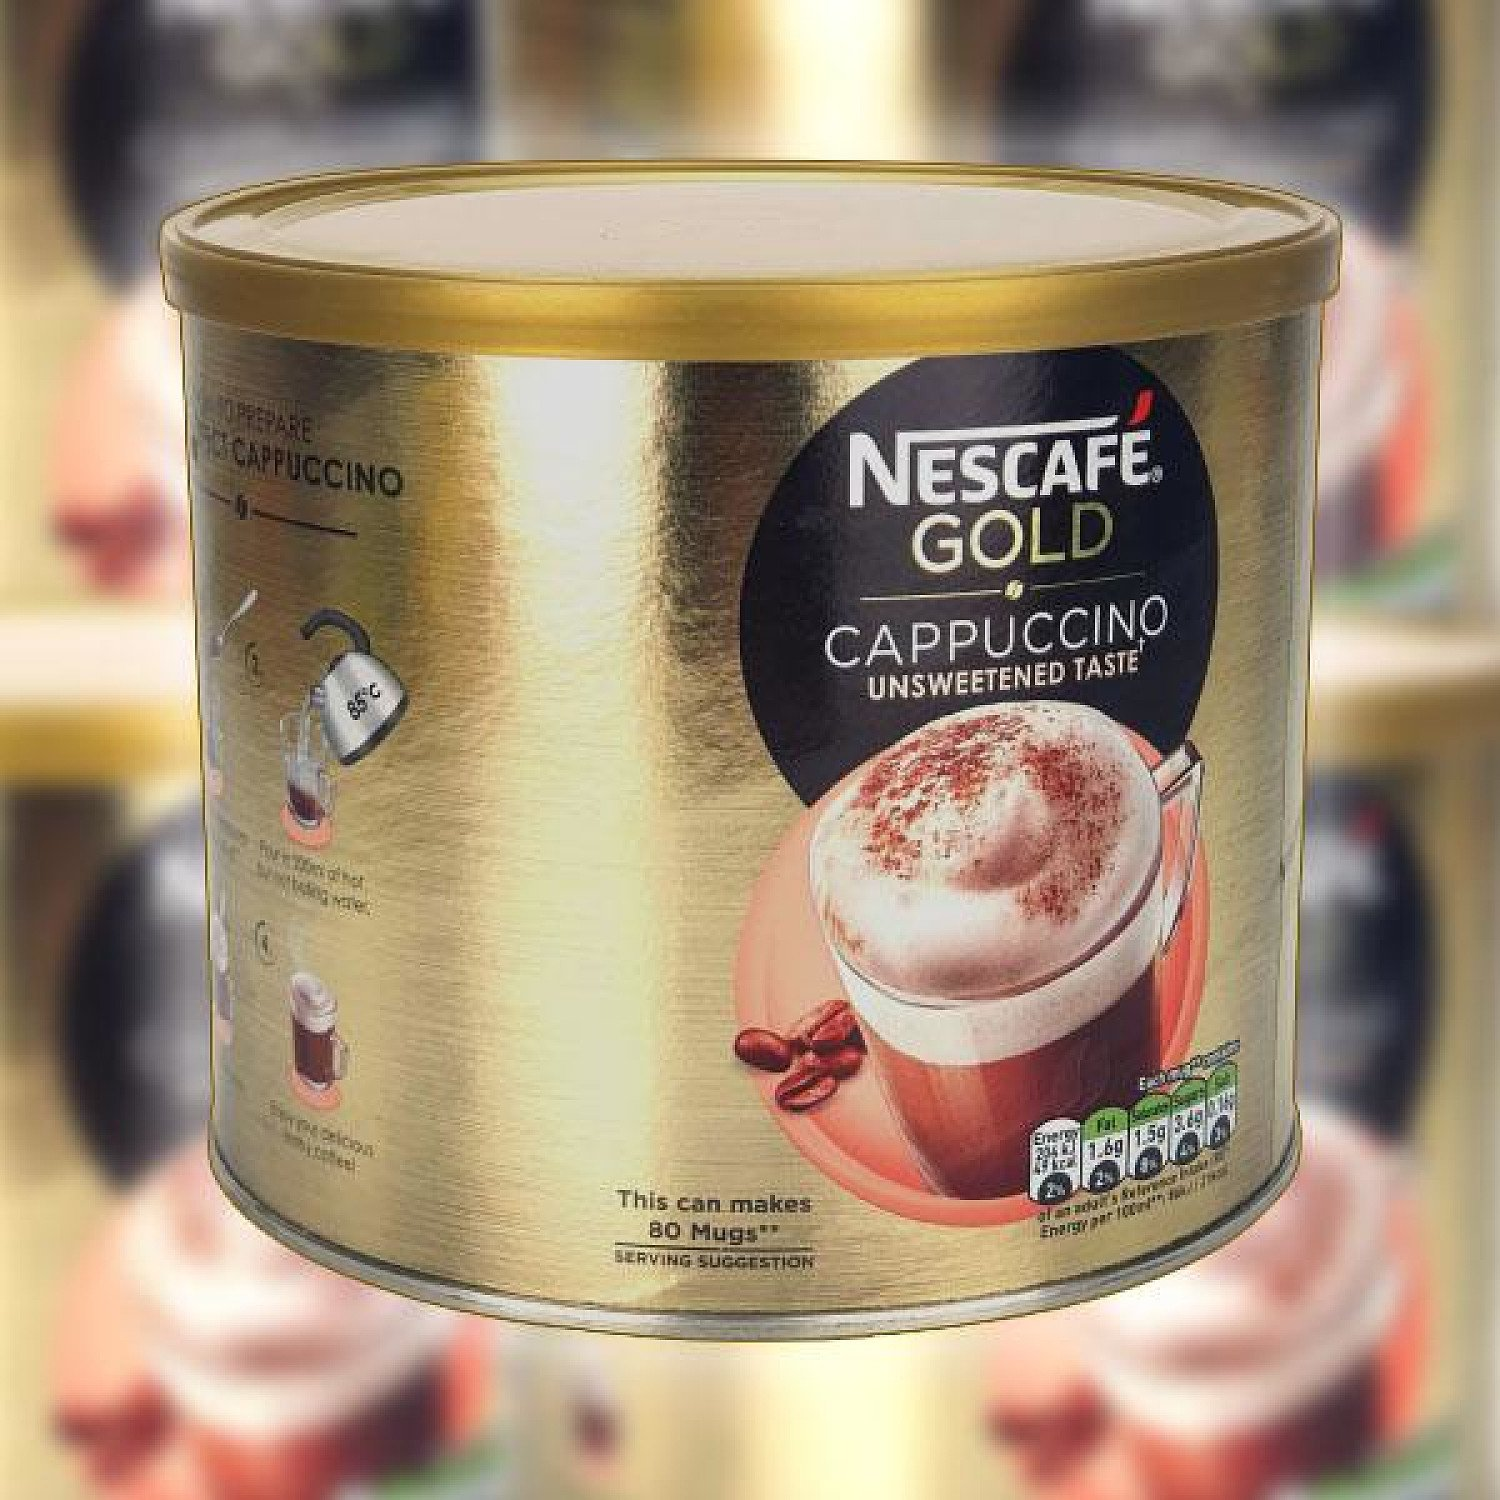 1 X NESCAFE GOLD CAPPUCCINO UNSWEETENED TASTE INSTANT COFFEE 1KG DRUM